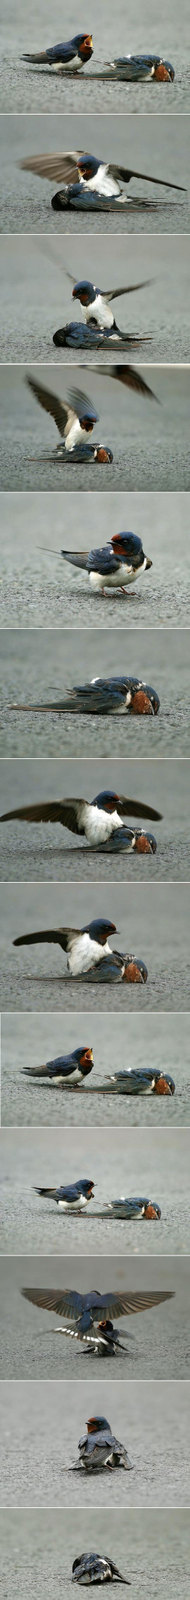 Barn_swallows_by_wilson_hsu